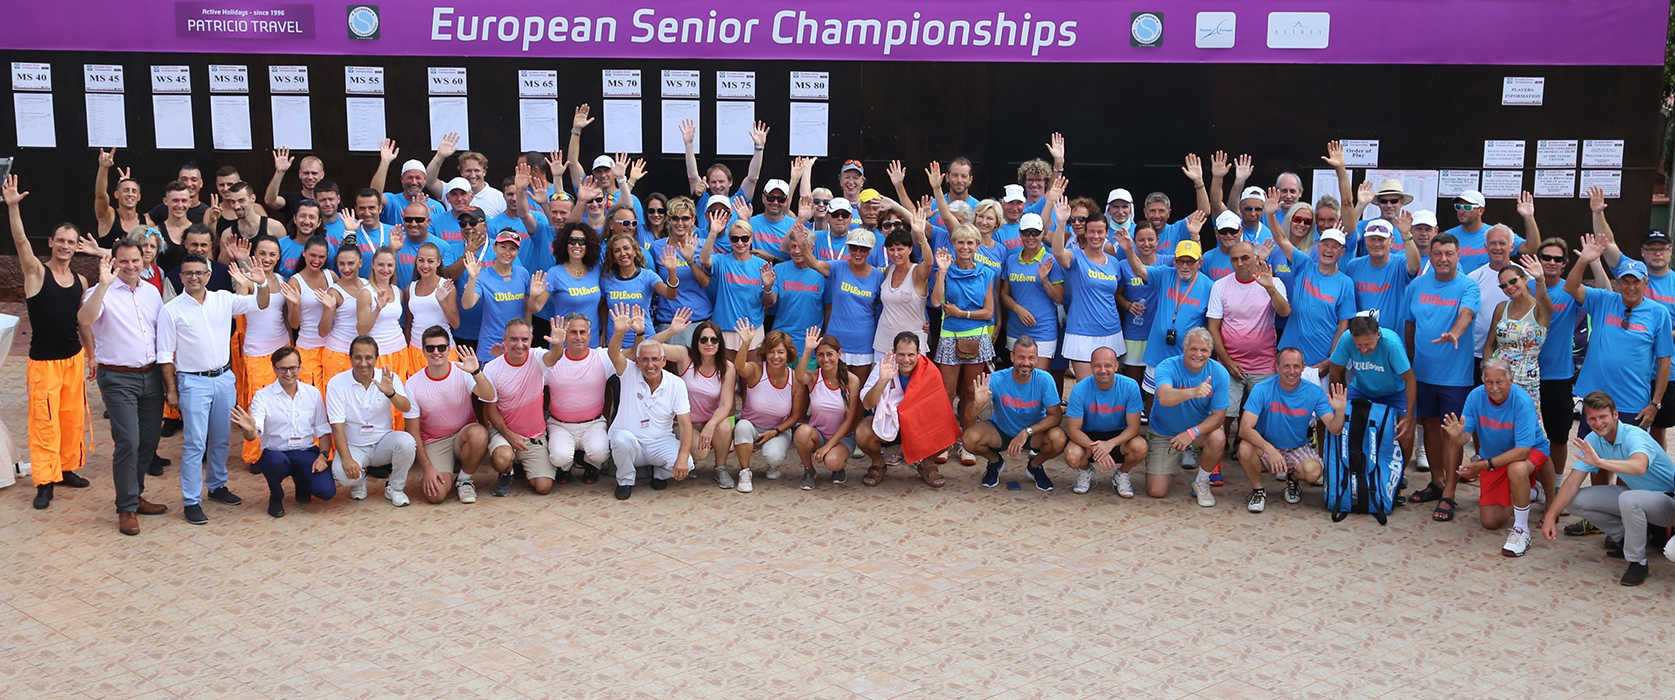 European Senior Championships 2018 in Manavgat